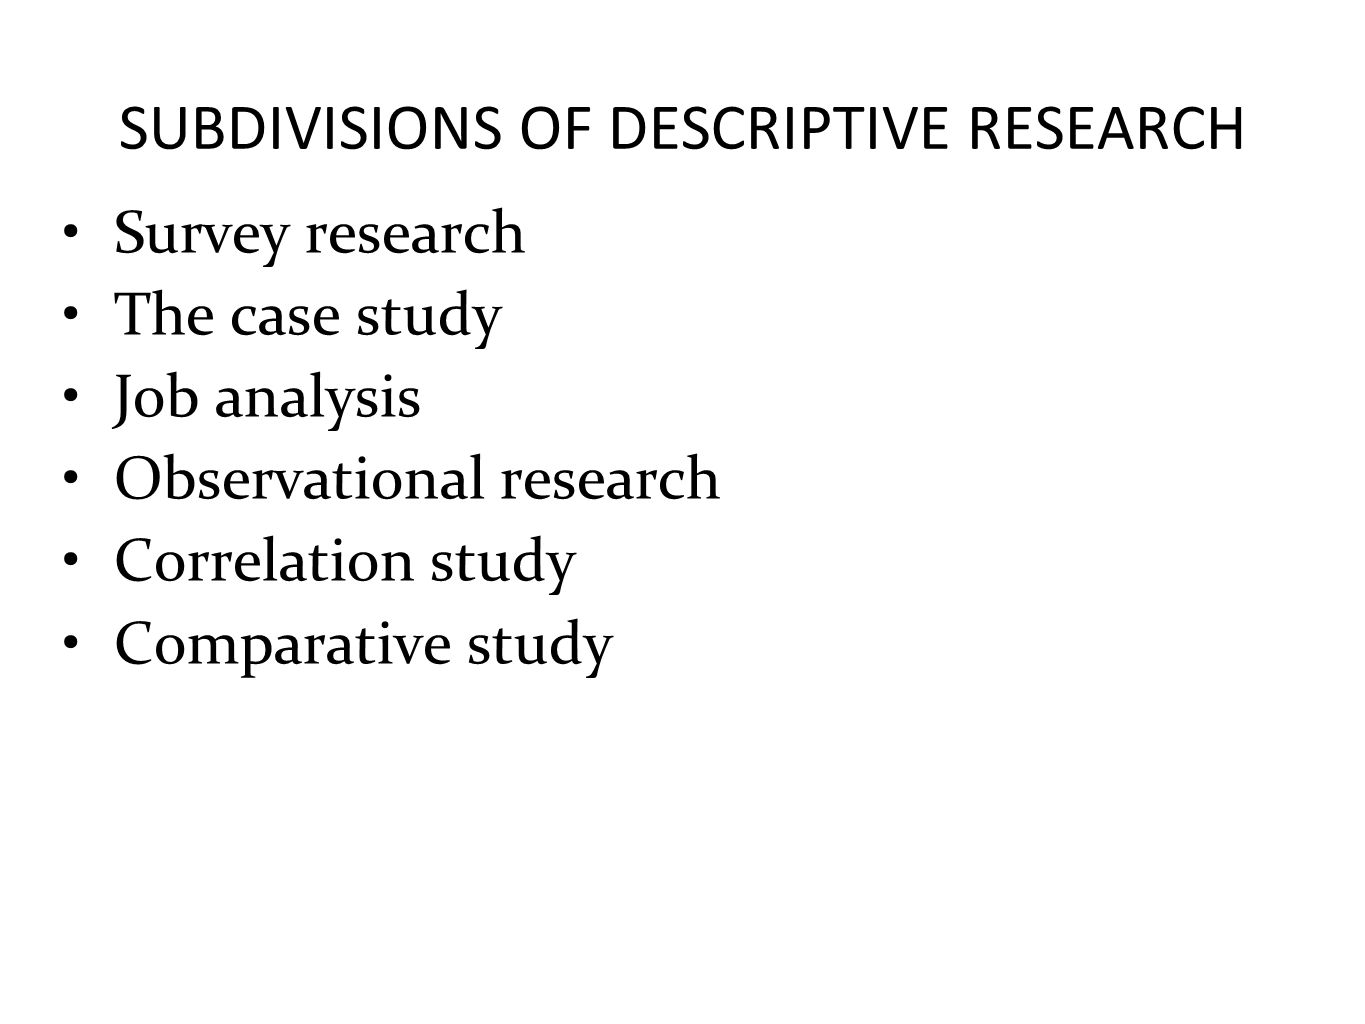 SUBDIVISIONS OF DESCRIPTIVE RESEARCH Survey research The case study Job analysis Observational research Correlation study Comparative study